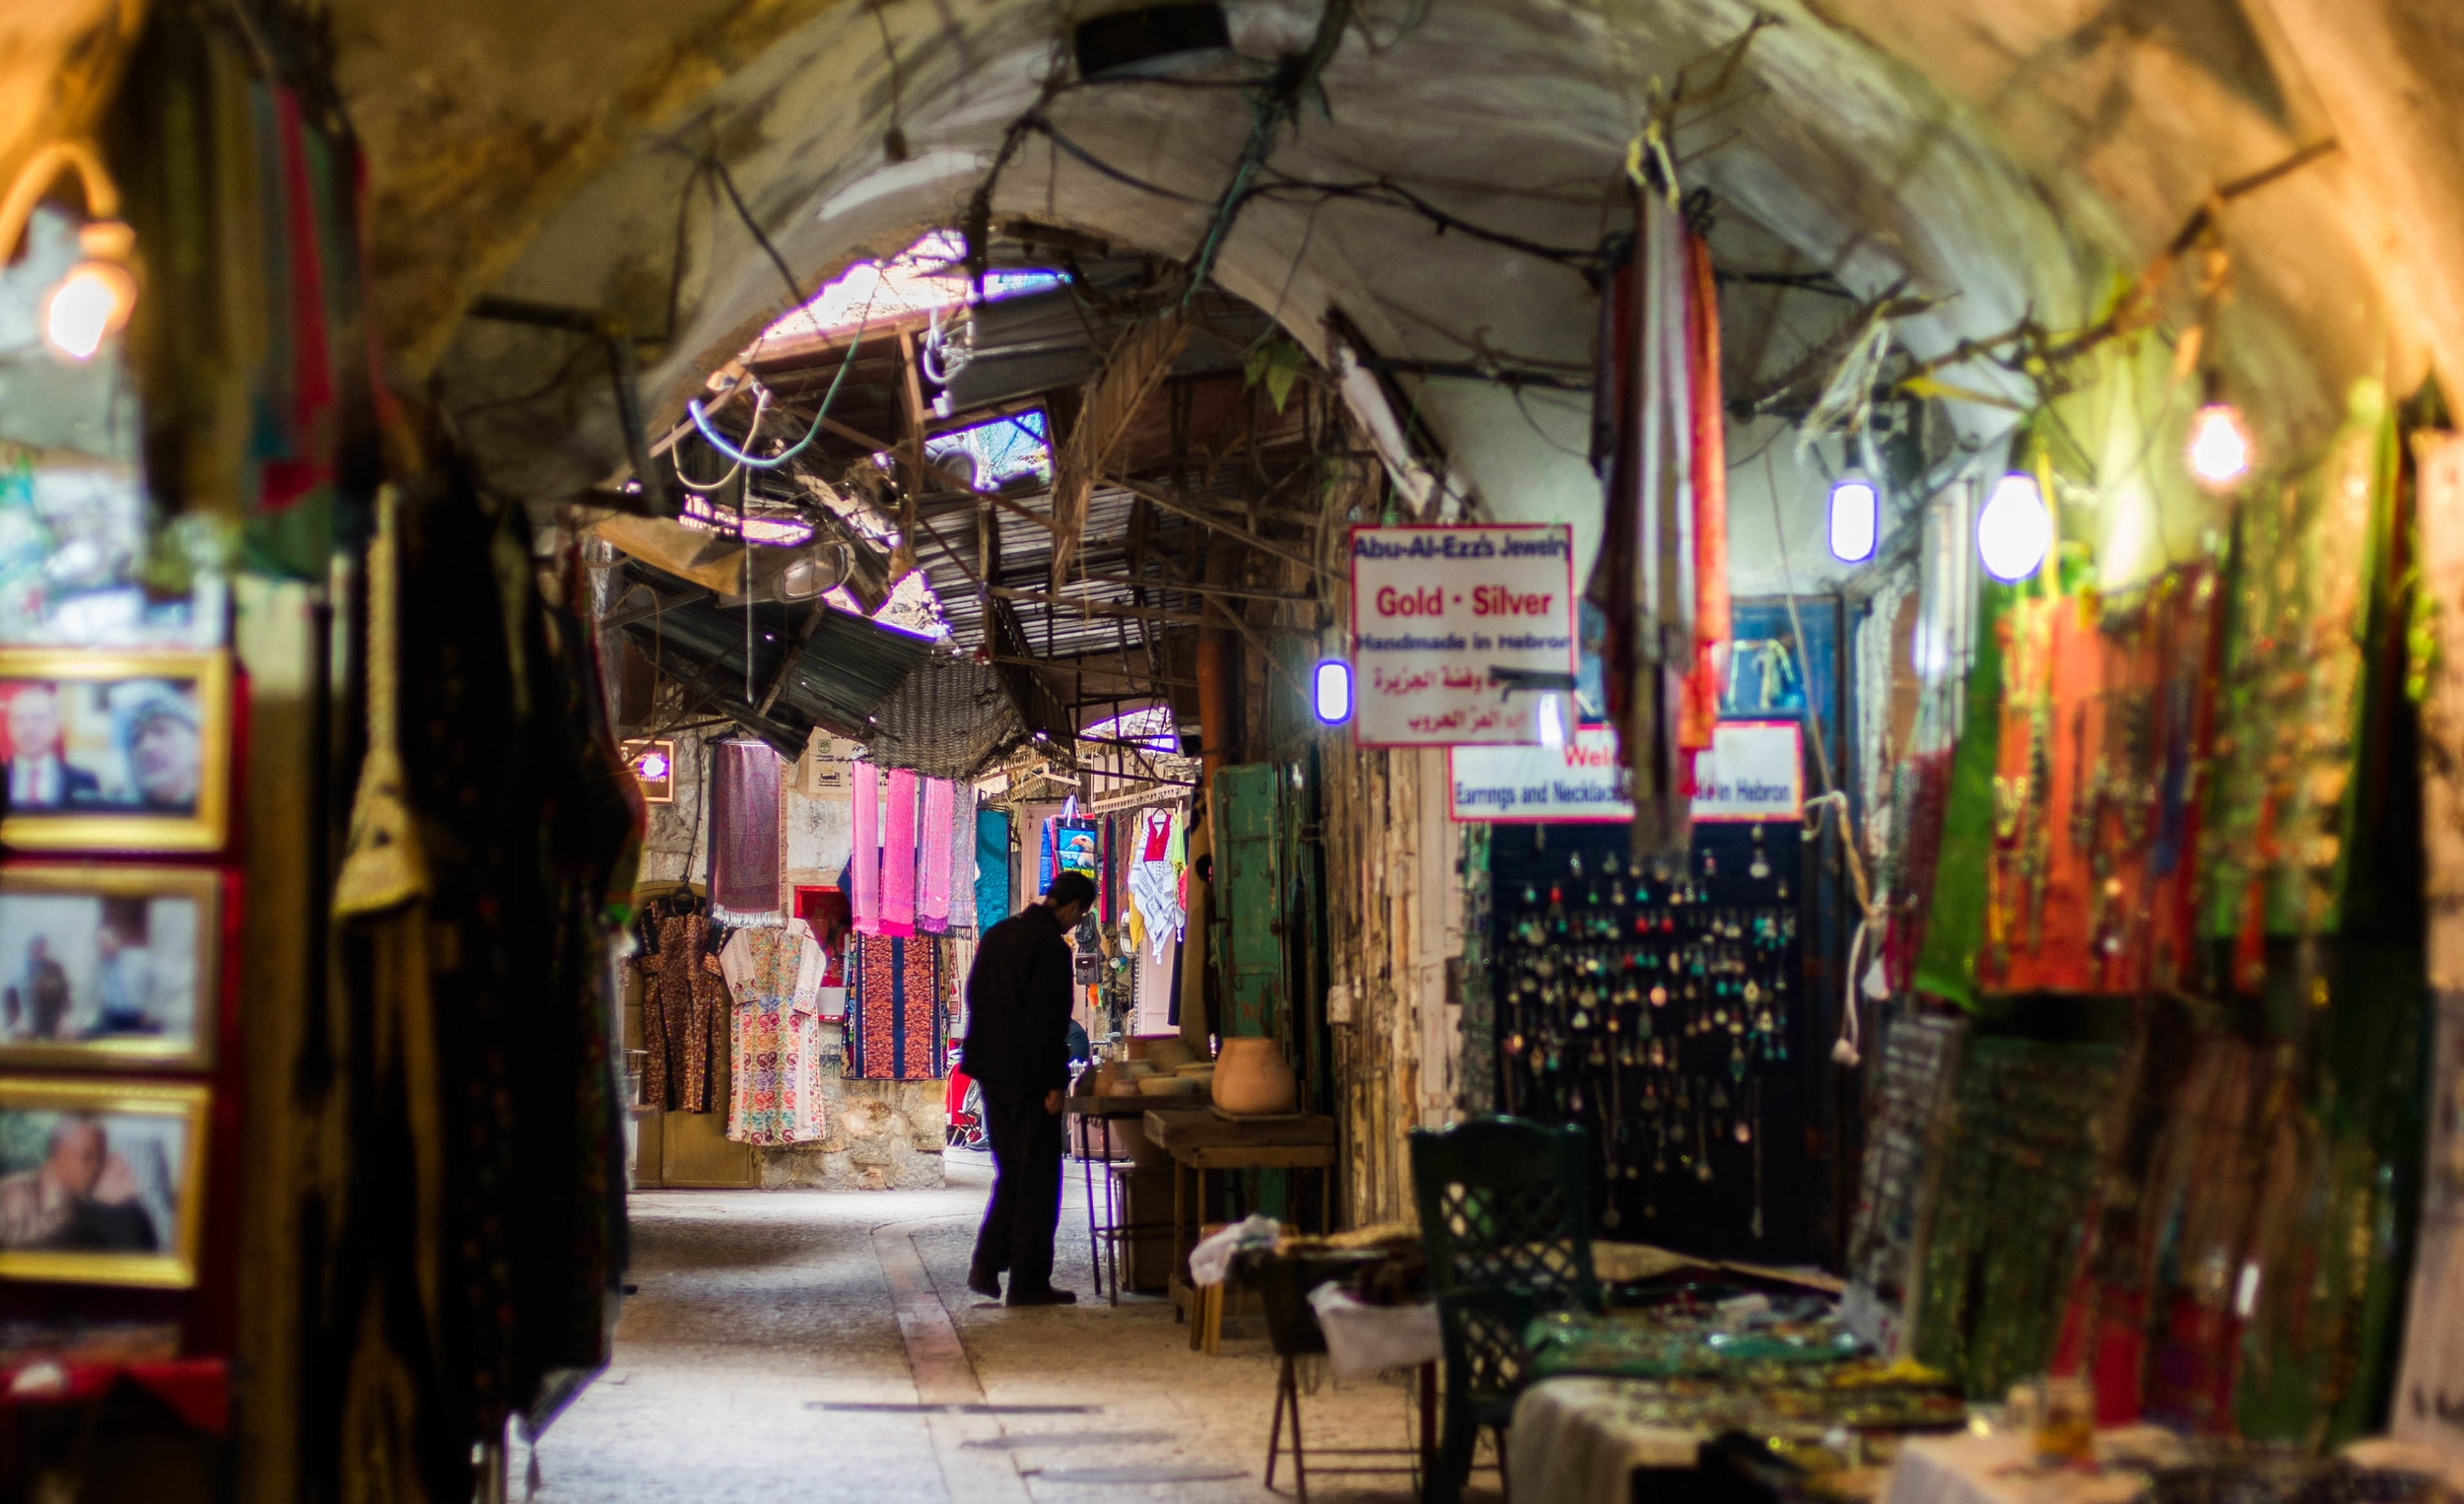 A Palestinian man peruses through his items in his shop a little down aways from the Women in Hebron cooperative table in the Old City of Hebron market.